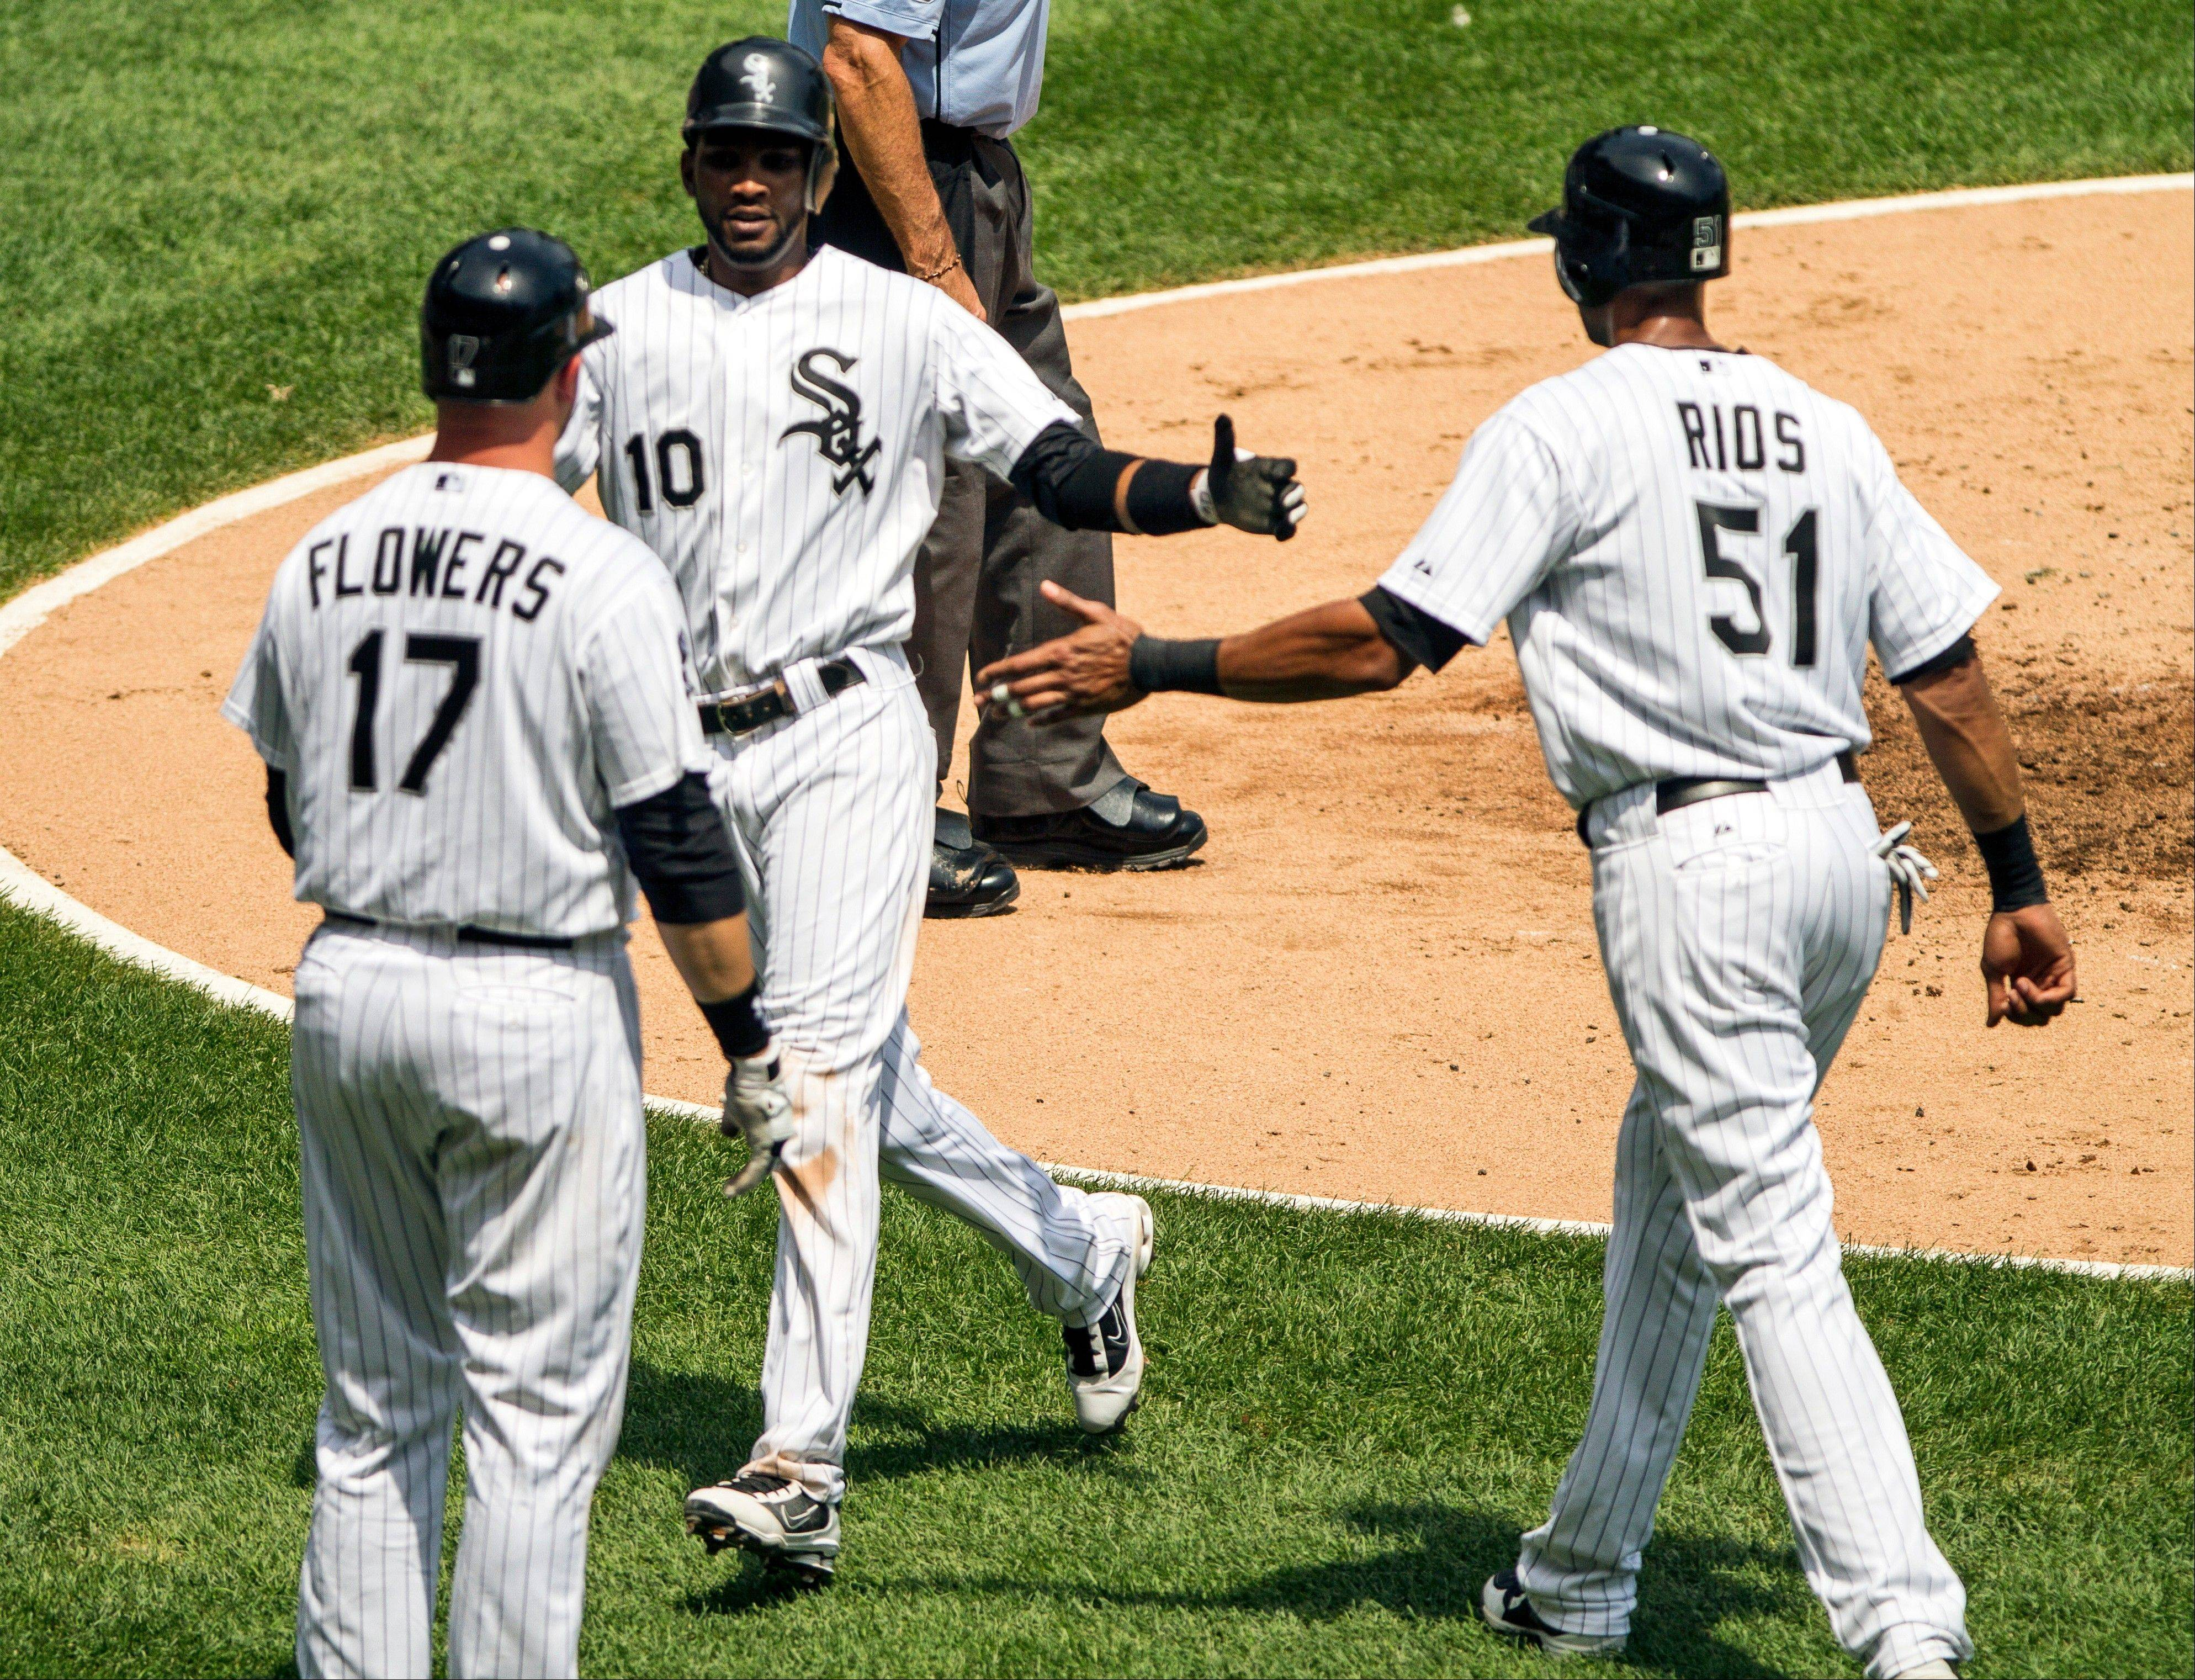 White Sox shortstop Alexei Ramirez (10) shakes hands with Tyler Flowers and Alex Rios Wednesday after scoring on Dayan Viciedo's hit in the second inning against the Minnesota Twins at U.S. Cellular Field.